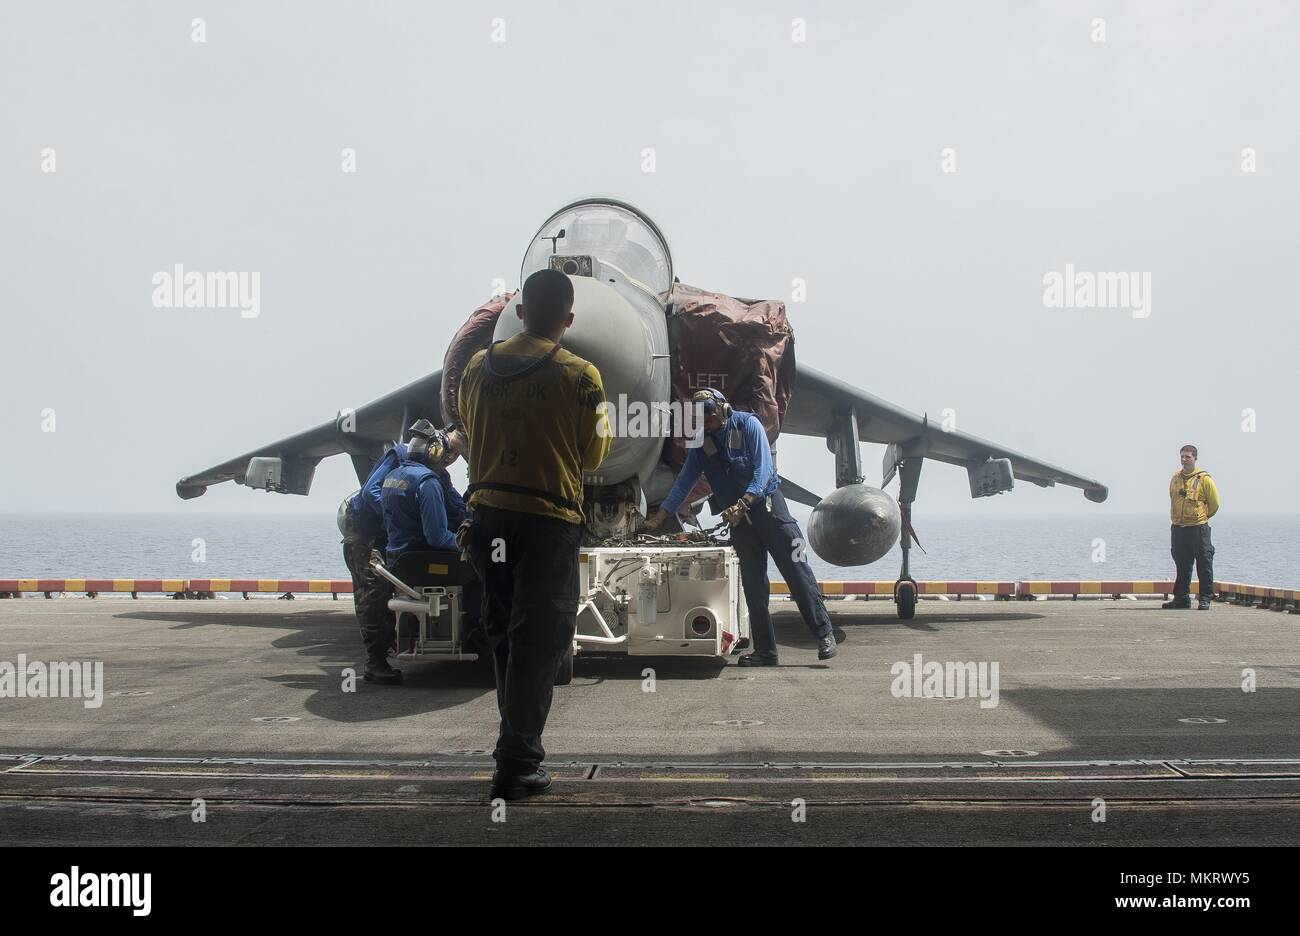 180507-N-AH771-0071 U.S. 5TH FLEET AREA OF OPERATIONS (May 7, 2018) Sailors aboard the Wasp-class amphibious assault ship USS Iwo Jima (LHD 7) prepare an AV-8B Harrier jet attached to Marine Medium Tiltrotor Squadron (VMM) 162 (Reinforced), to be moved into the ship's hangar bay, May 7, 2018, May 7, 2018. Iwo Jima, homeported in Mayport, Fla. is on deployment to the U.S. 5th Fleet area of operations in support of maritime security operations to reassure allies and partners, and preserve the freedom of navigation and the free flow of commerce in the region. (U.S. Navy photo by Mass Communicatio Stock Photo